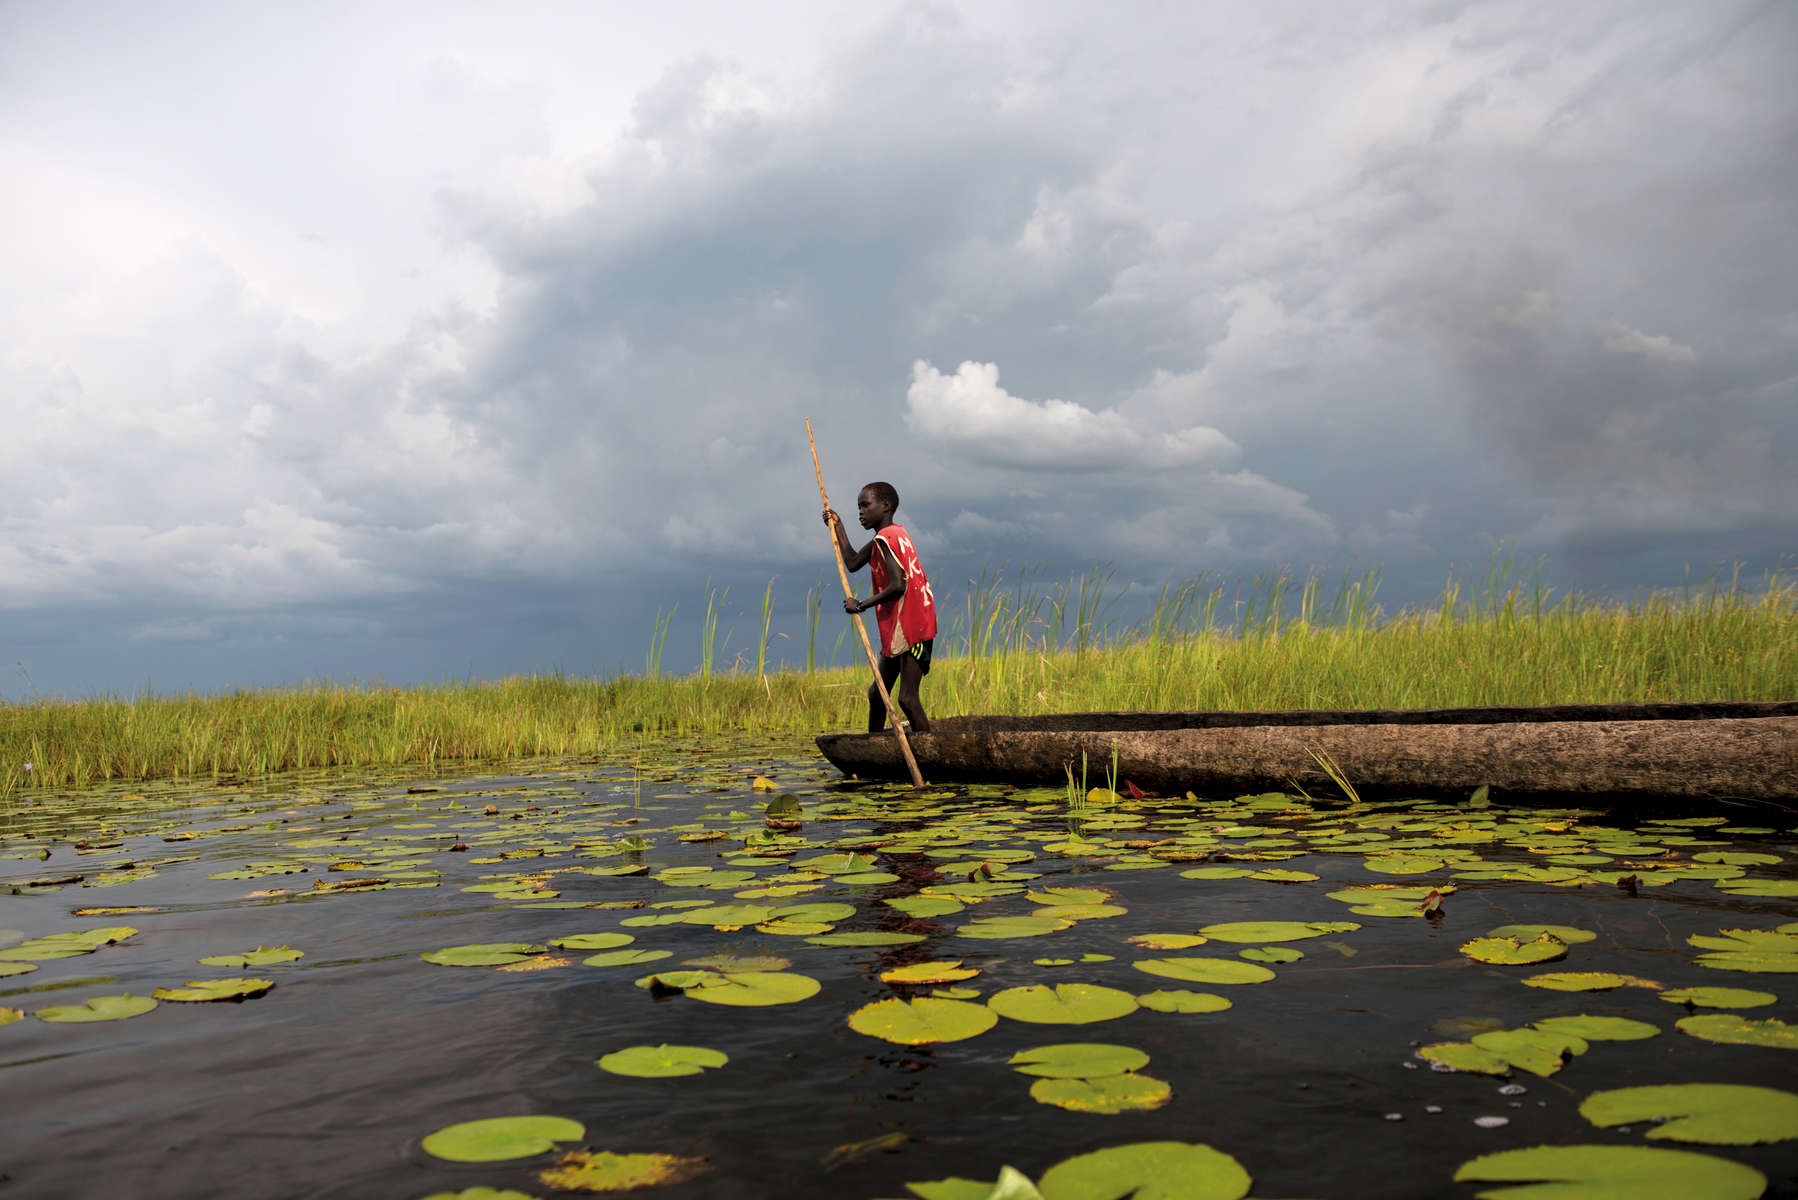 Chuol escaped into a vast swamp in South Sudan when fighters swept into his village,September 2015.201